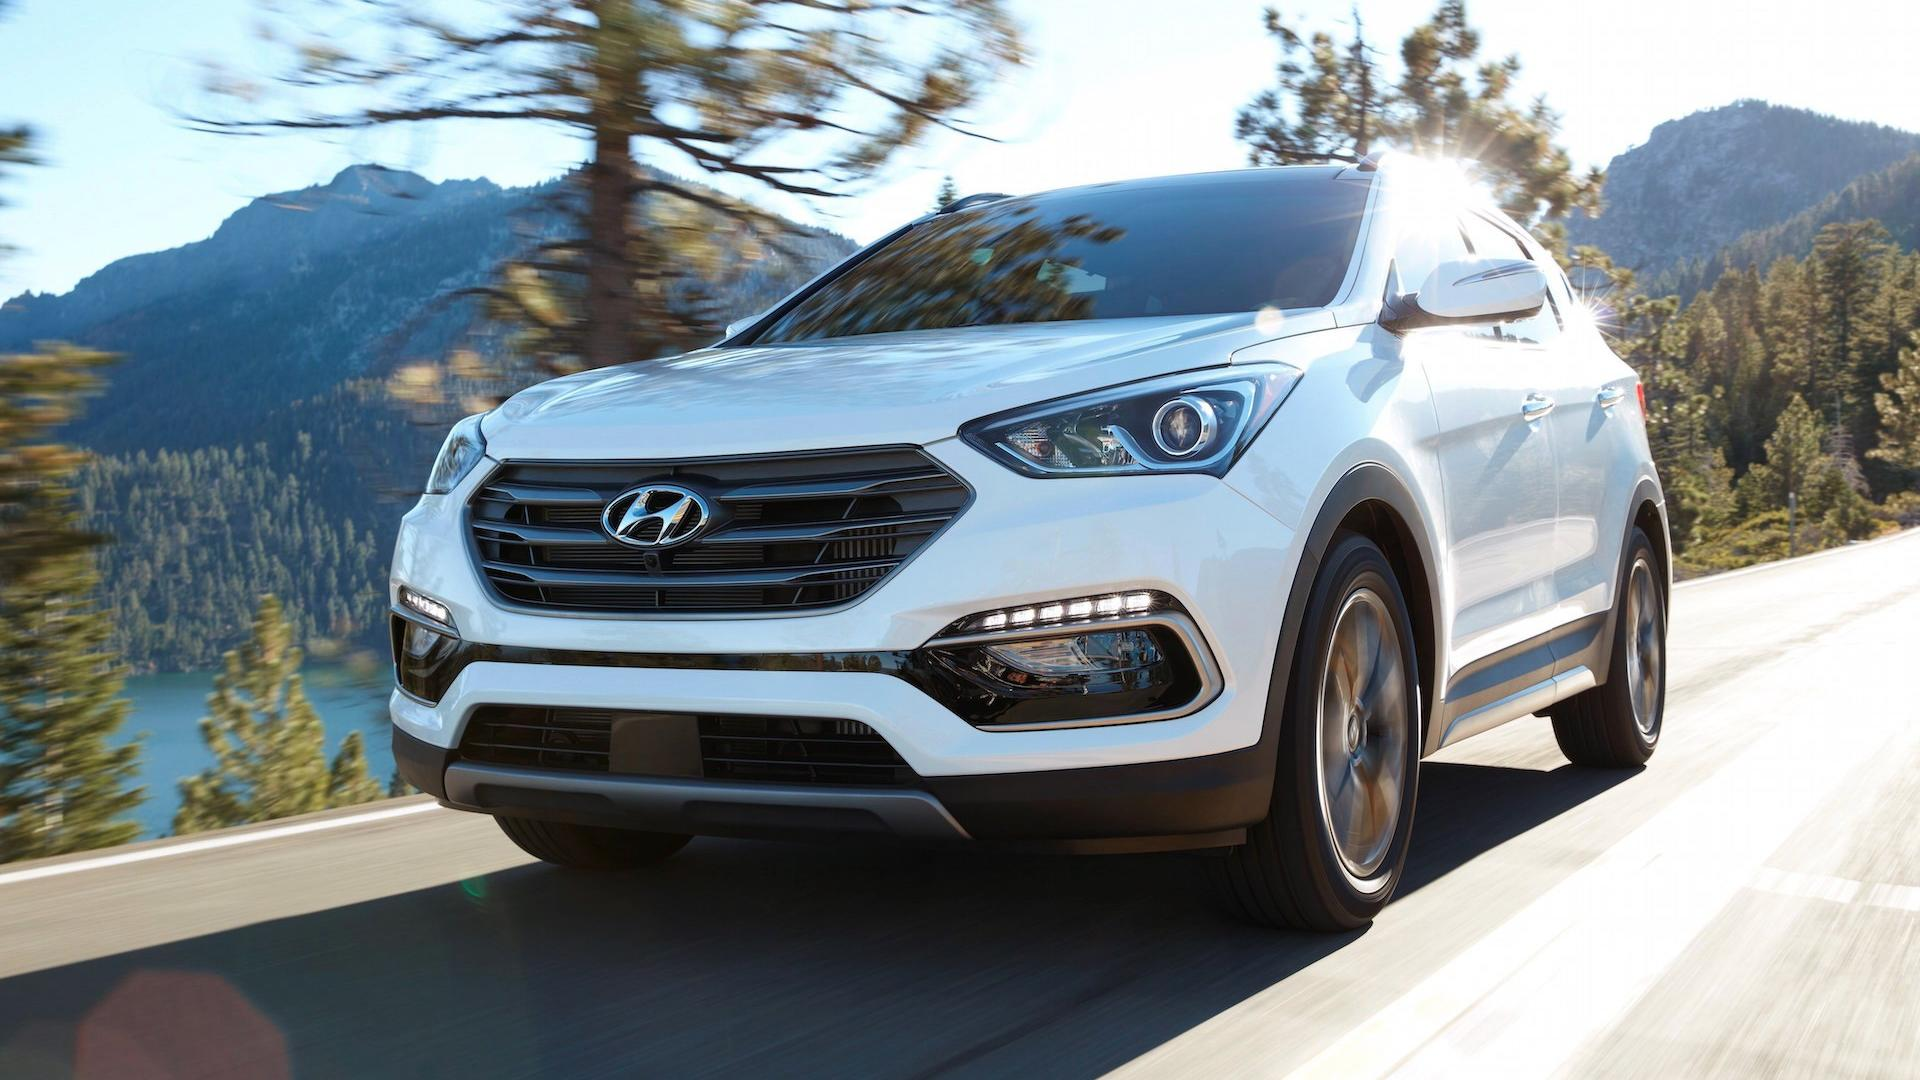 2018 Hyundai Santa Fe Sport >> Hyundai Santa Fe Sport News And Reviews Motor1 Com